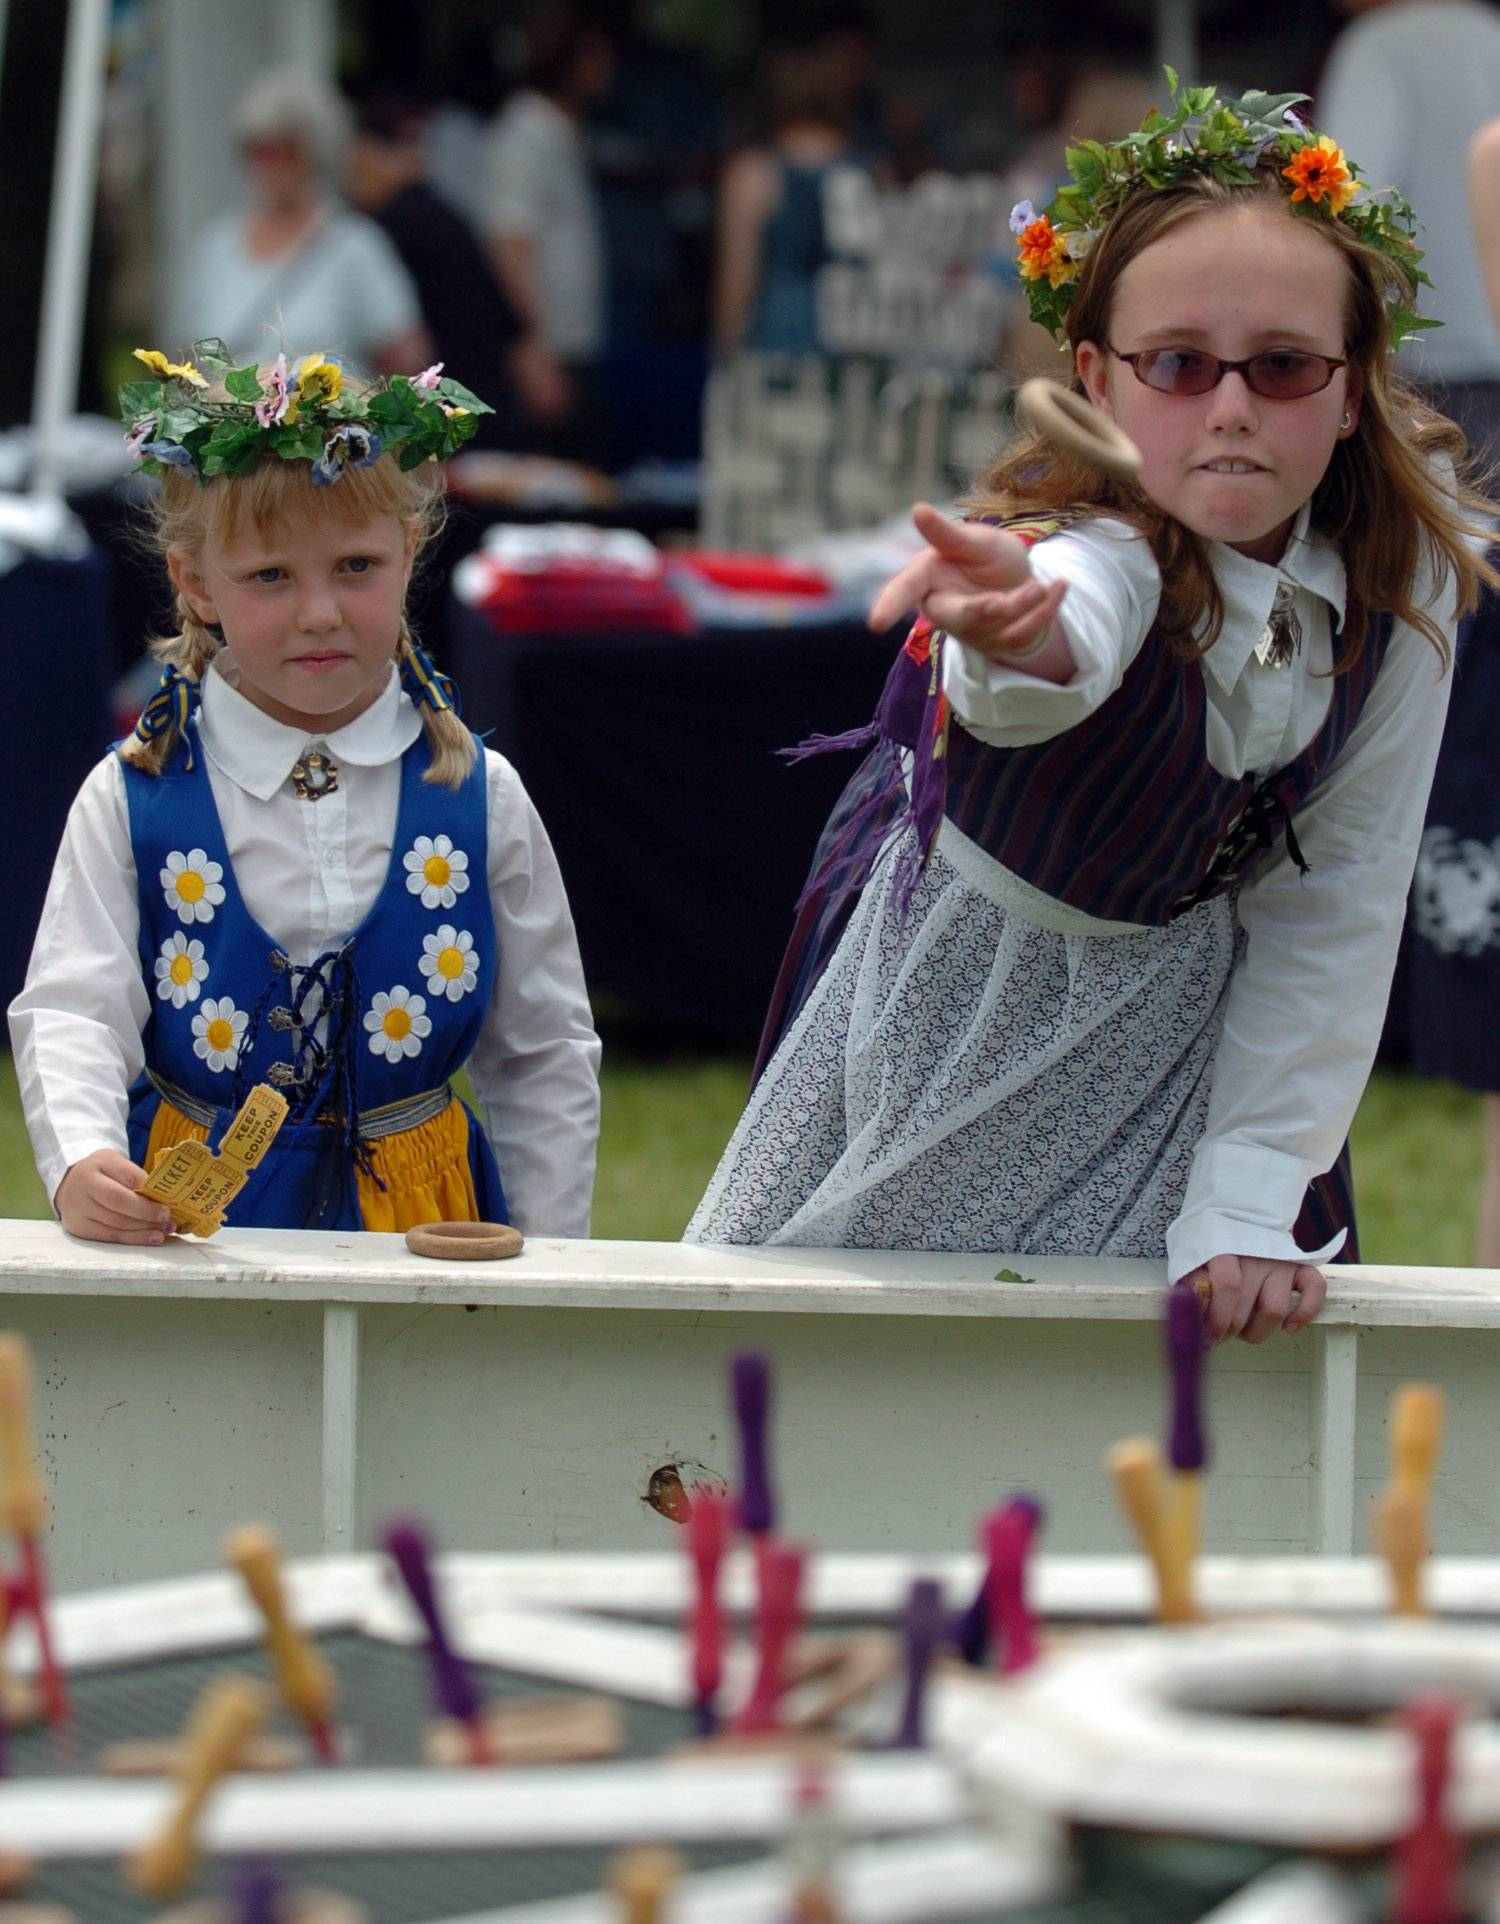 Members of the Swedish American Children's Choir play a ring toss game at a previous Swedish Day festival in Good Templar Park, Geneva. The choir will perform again this year at the festival.